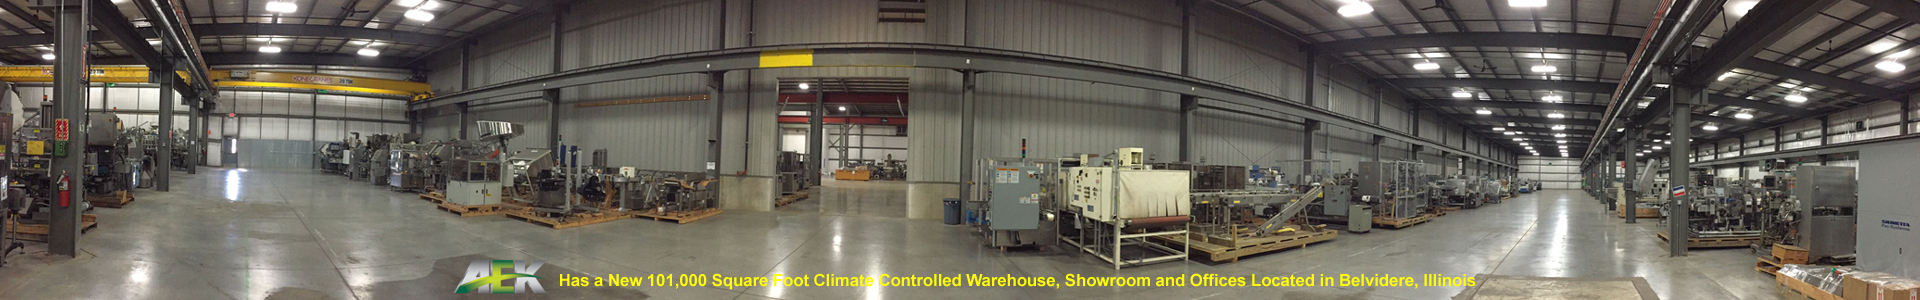 Packaging Equipment Warehouse